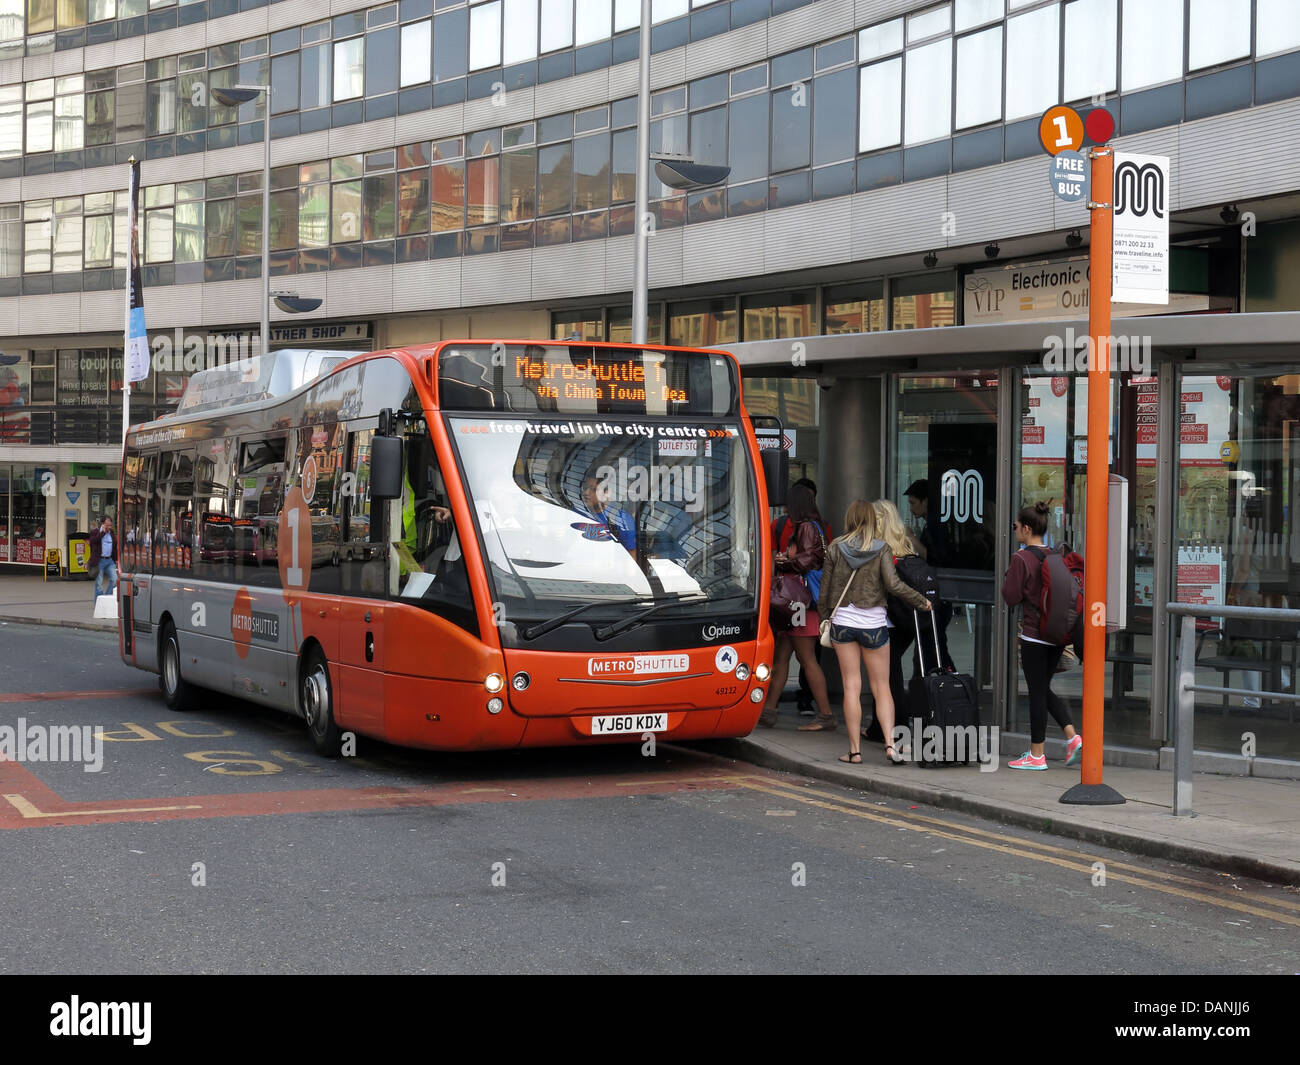 Greater,Manchester,city,transport,free,bus,the,MetroShuttle,Metroshuttle,is,a,free,city,centre,bus,funded,by,Manchester,City,Council,Transport,for,Greater,Manchester,NCP,and,Allied,London,The,service,links,all,the,city,centre,railway,stations,main,car,parks,and,many,bus,and,Metrolink,tram,TFGM,GM,gotonysmith,outside,a,bus,stop,bustop,Metroshuttle,is,a,free,city,centre,bus,funded,by,Manchester,City,Council,Transport for Greater Manchester,NCP,and,Allied,London.,The,service,links,all,the,city,centre,railway,stations,main,car,parks,and,many,bus,and,Metrolink,tram,stops.,Full,details,of,Metroshuttle,a map of all three routes,stopping,places,and,times,is,available,via,the,Transport,for,Greater,Manchester,website,Metroshuttle,buses,are,low-floor,easy,access,diesel-electric,hybrid,buses,that,you,can,hop,on,and,off,as,often,as,you,wish,Metroshuttles,are,free,buses,linking,the,main,rail,stations,car parks,shopping,areas,and,businesses,in,Manchester,city,centre.,Metroshuttle,buses,run,from,Piccadilly,Salford Central,Victoria,Oxford,Road,and,Deansgate,rail,stations.,There,are,three,circular,routes,covering,the,main,areas,in,the,city